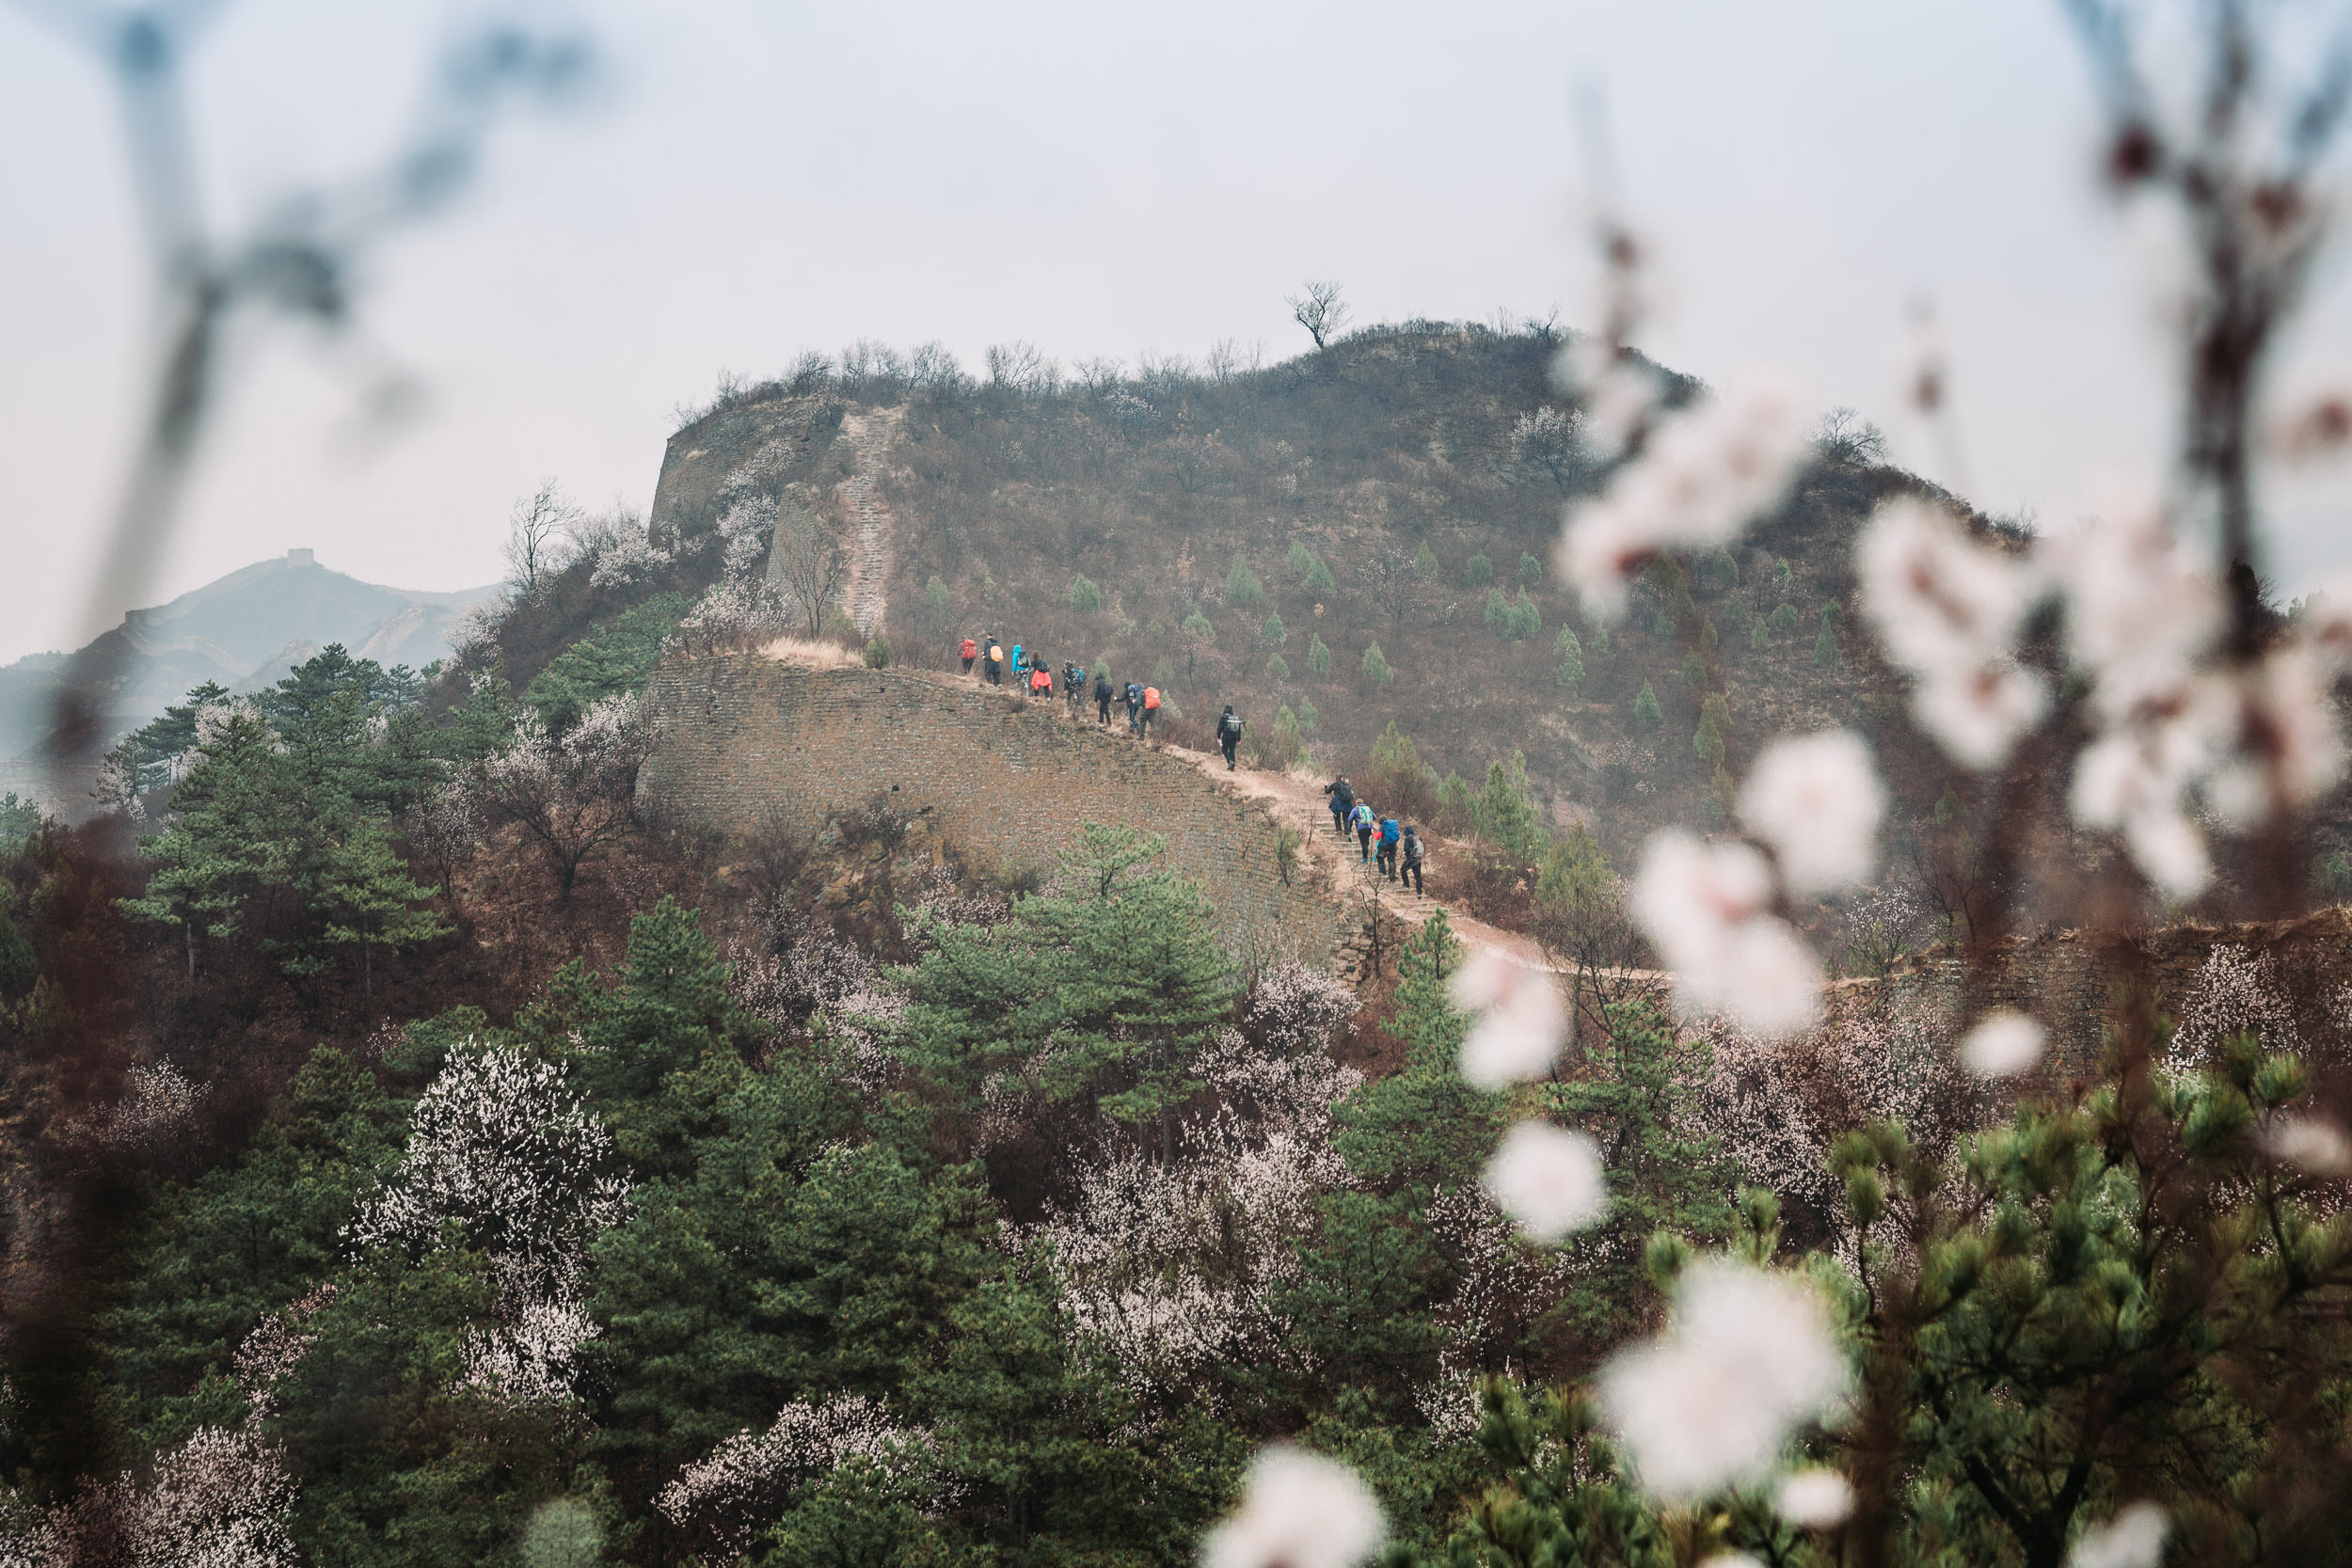 Much of the Gubeiku section of the Great Wall is slowly being reclaimed by nature. Forests line it for most of the way and the path is often quite treacherous.